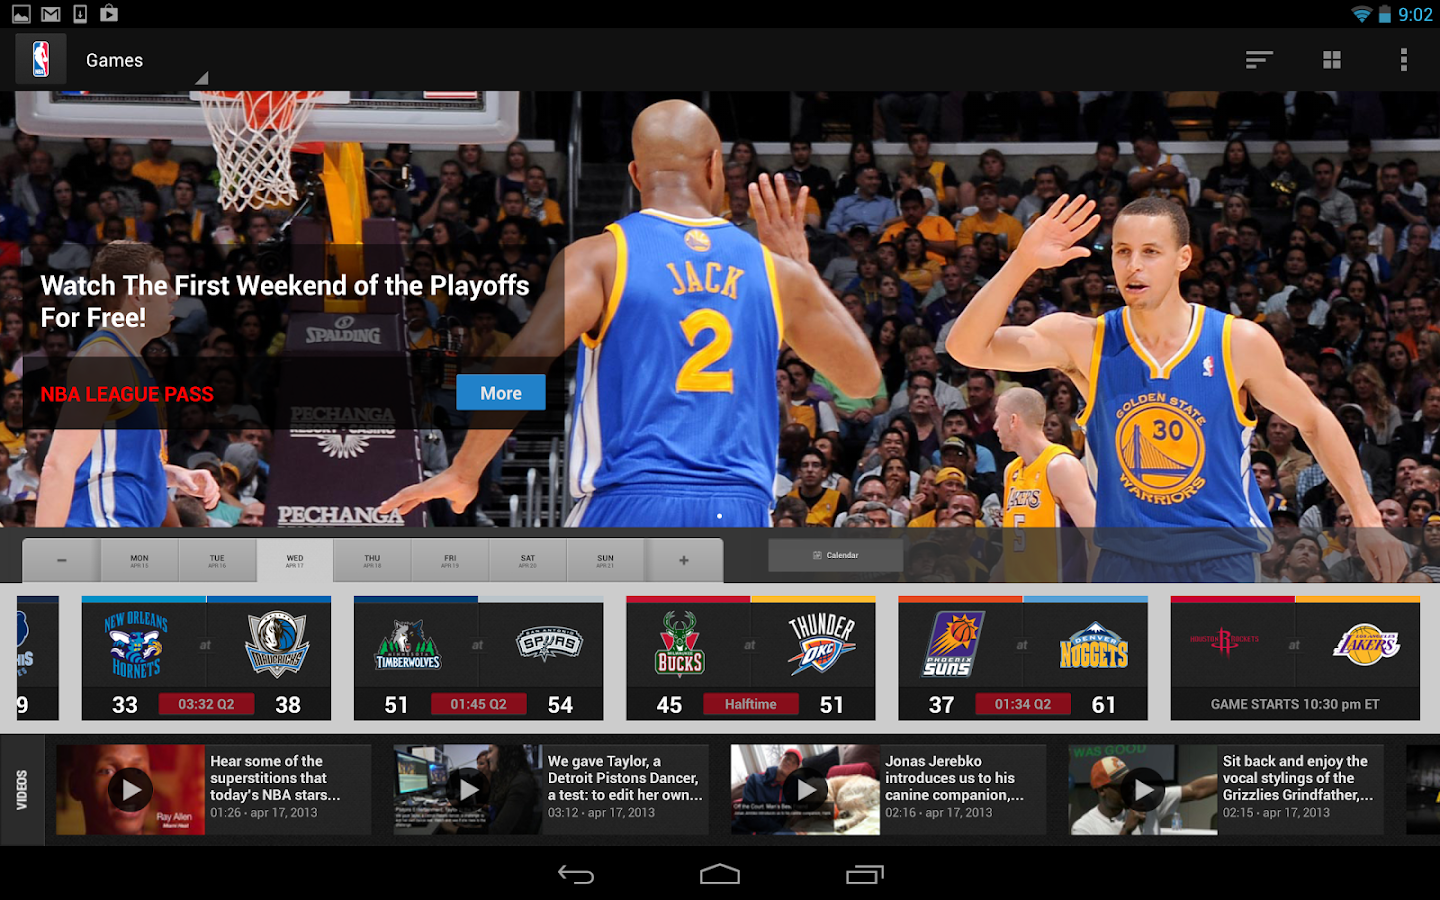 nba league pass how to connect device